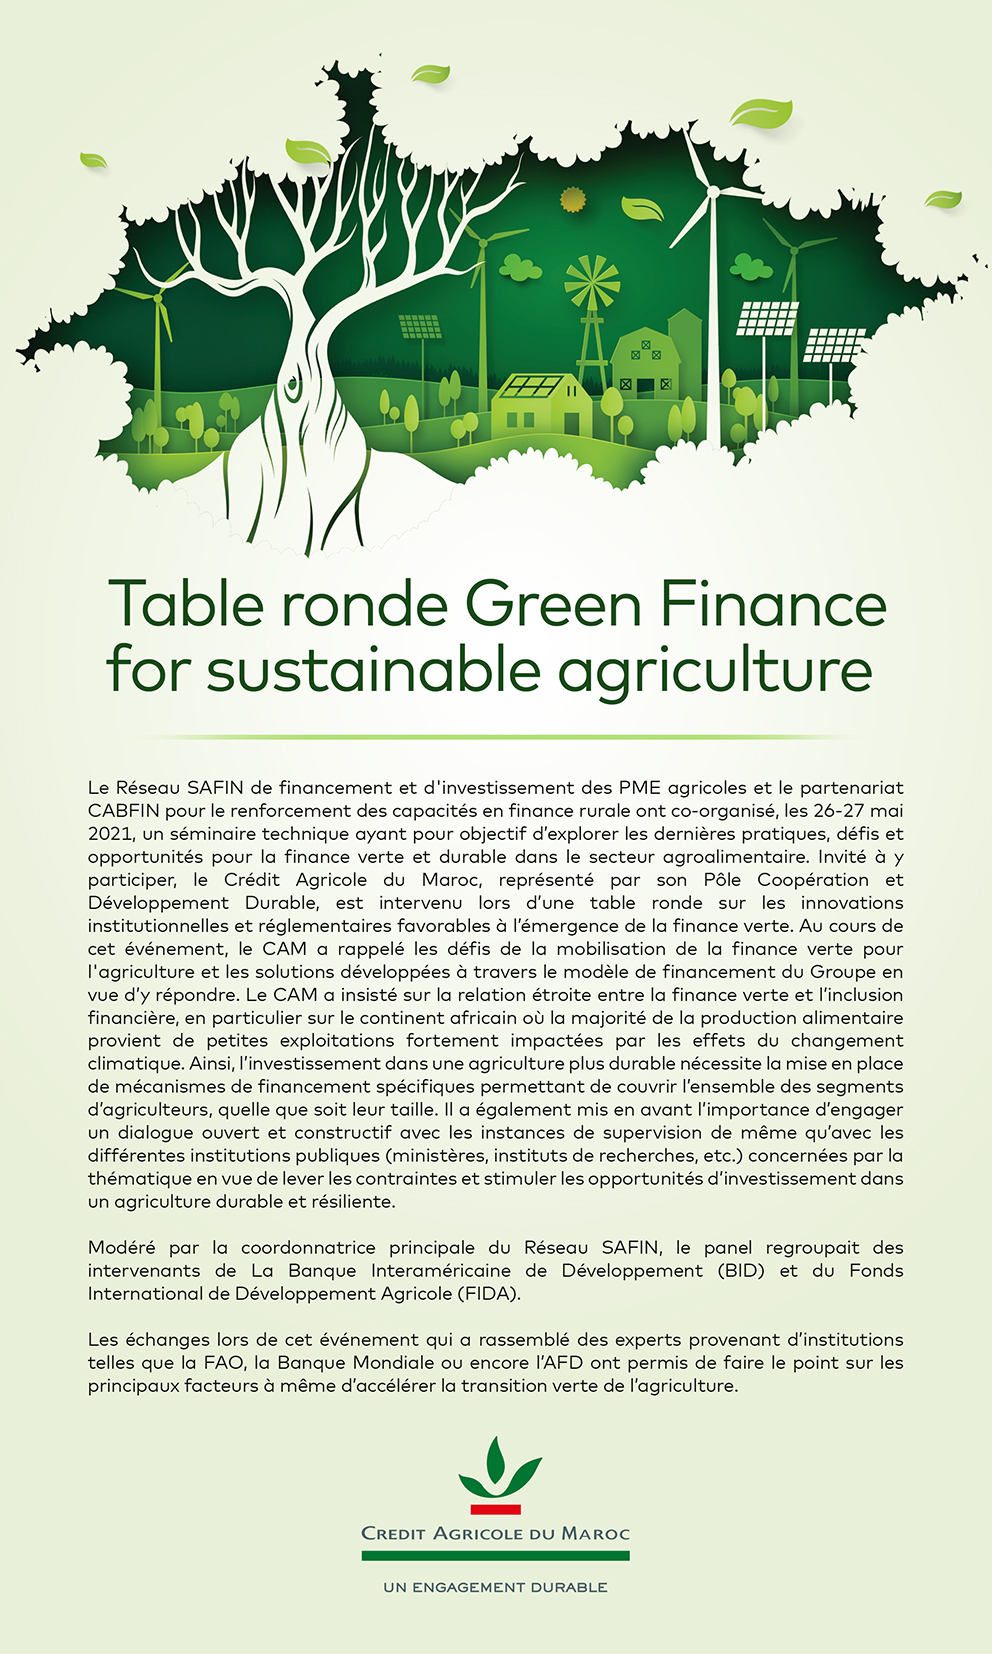 Table Ronde Green Finance for sustainable agriculture